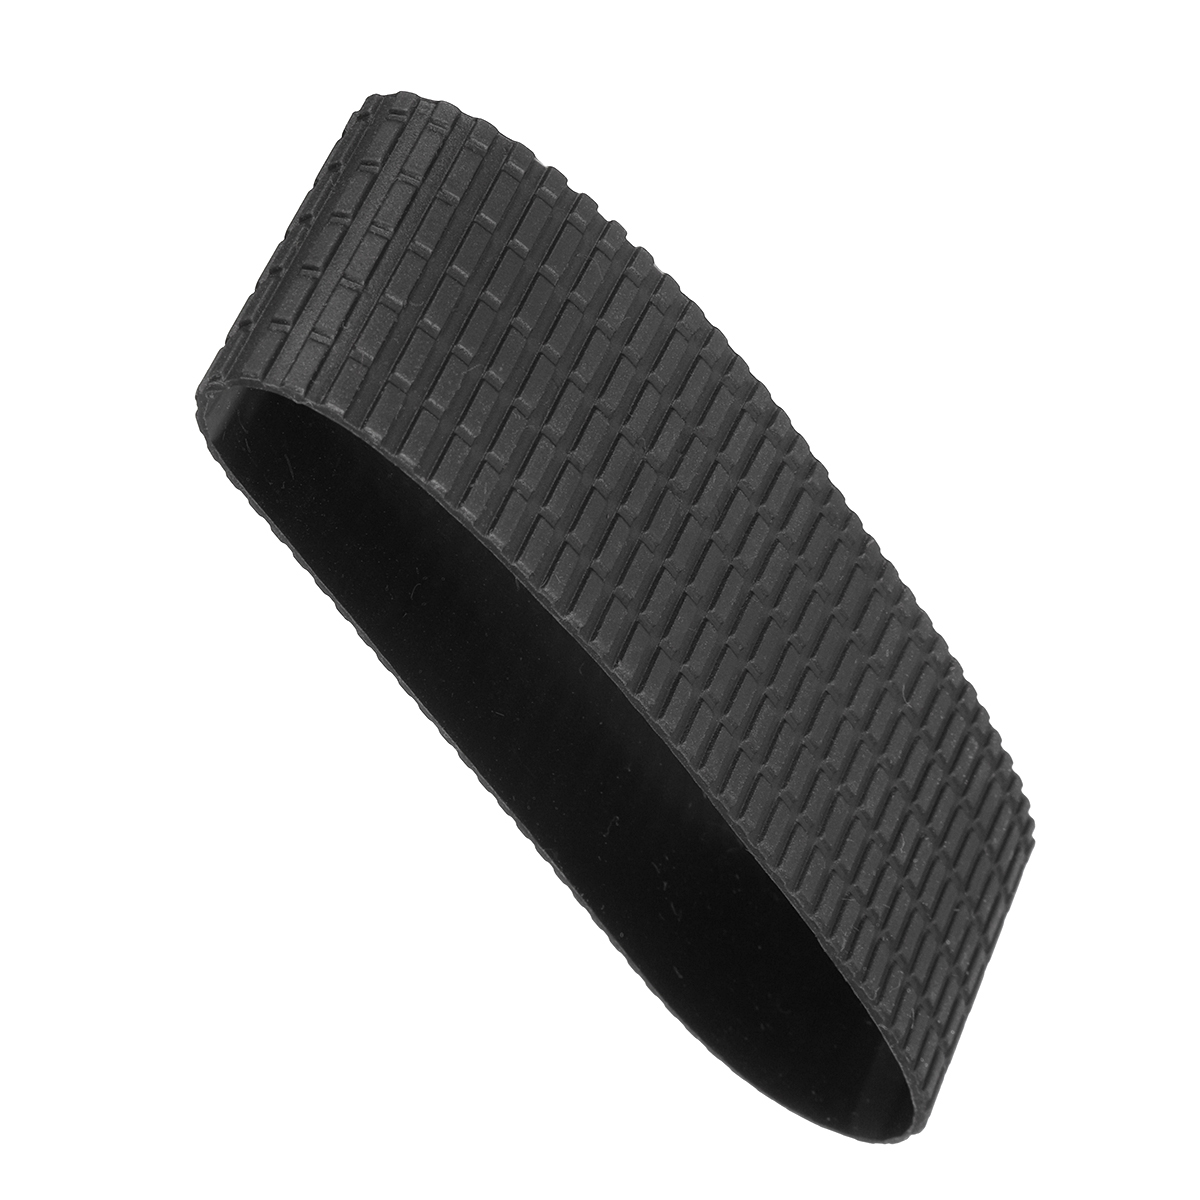 Lens Zoom Grip Rubber Ring Replacement Part for Nikon AF-S 24-70mm f//2.8G Zoom Rubber Ring